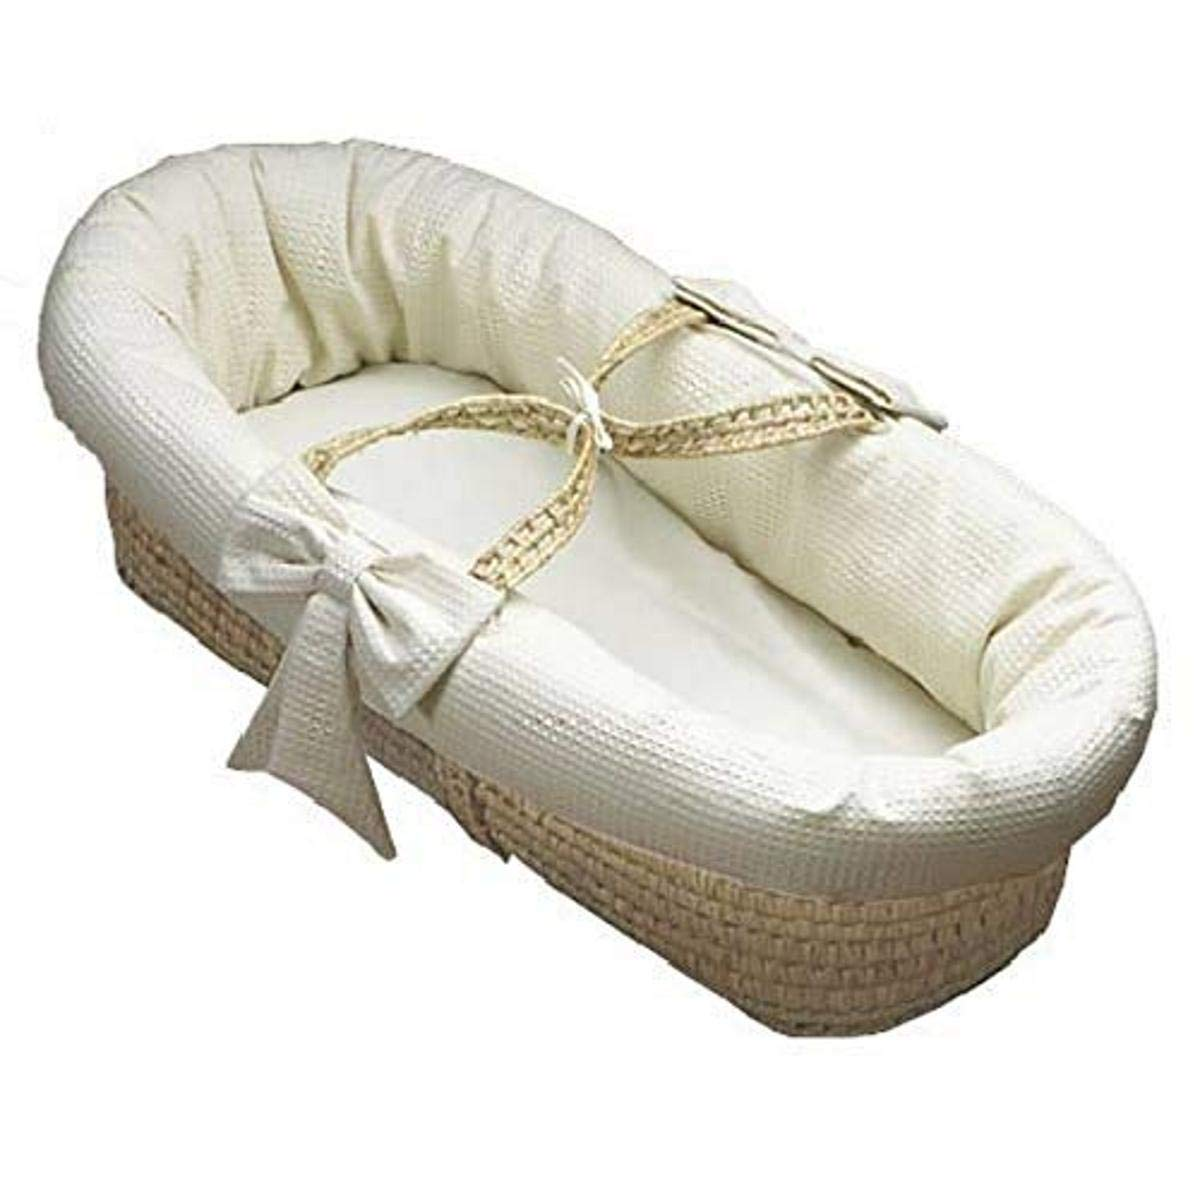 Baby Doll Bedding Pique Moses Basket, White, 0-3 Month